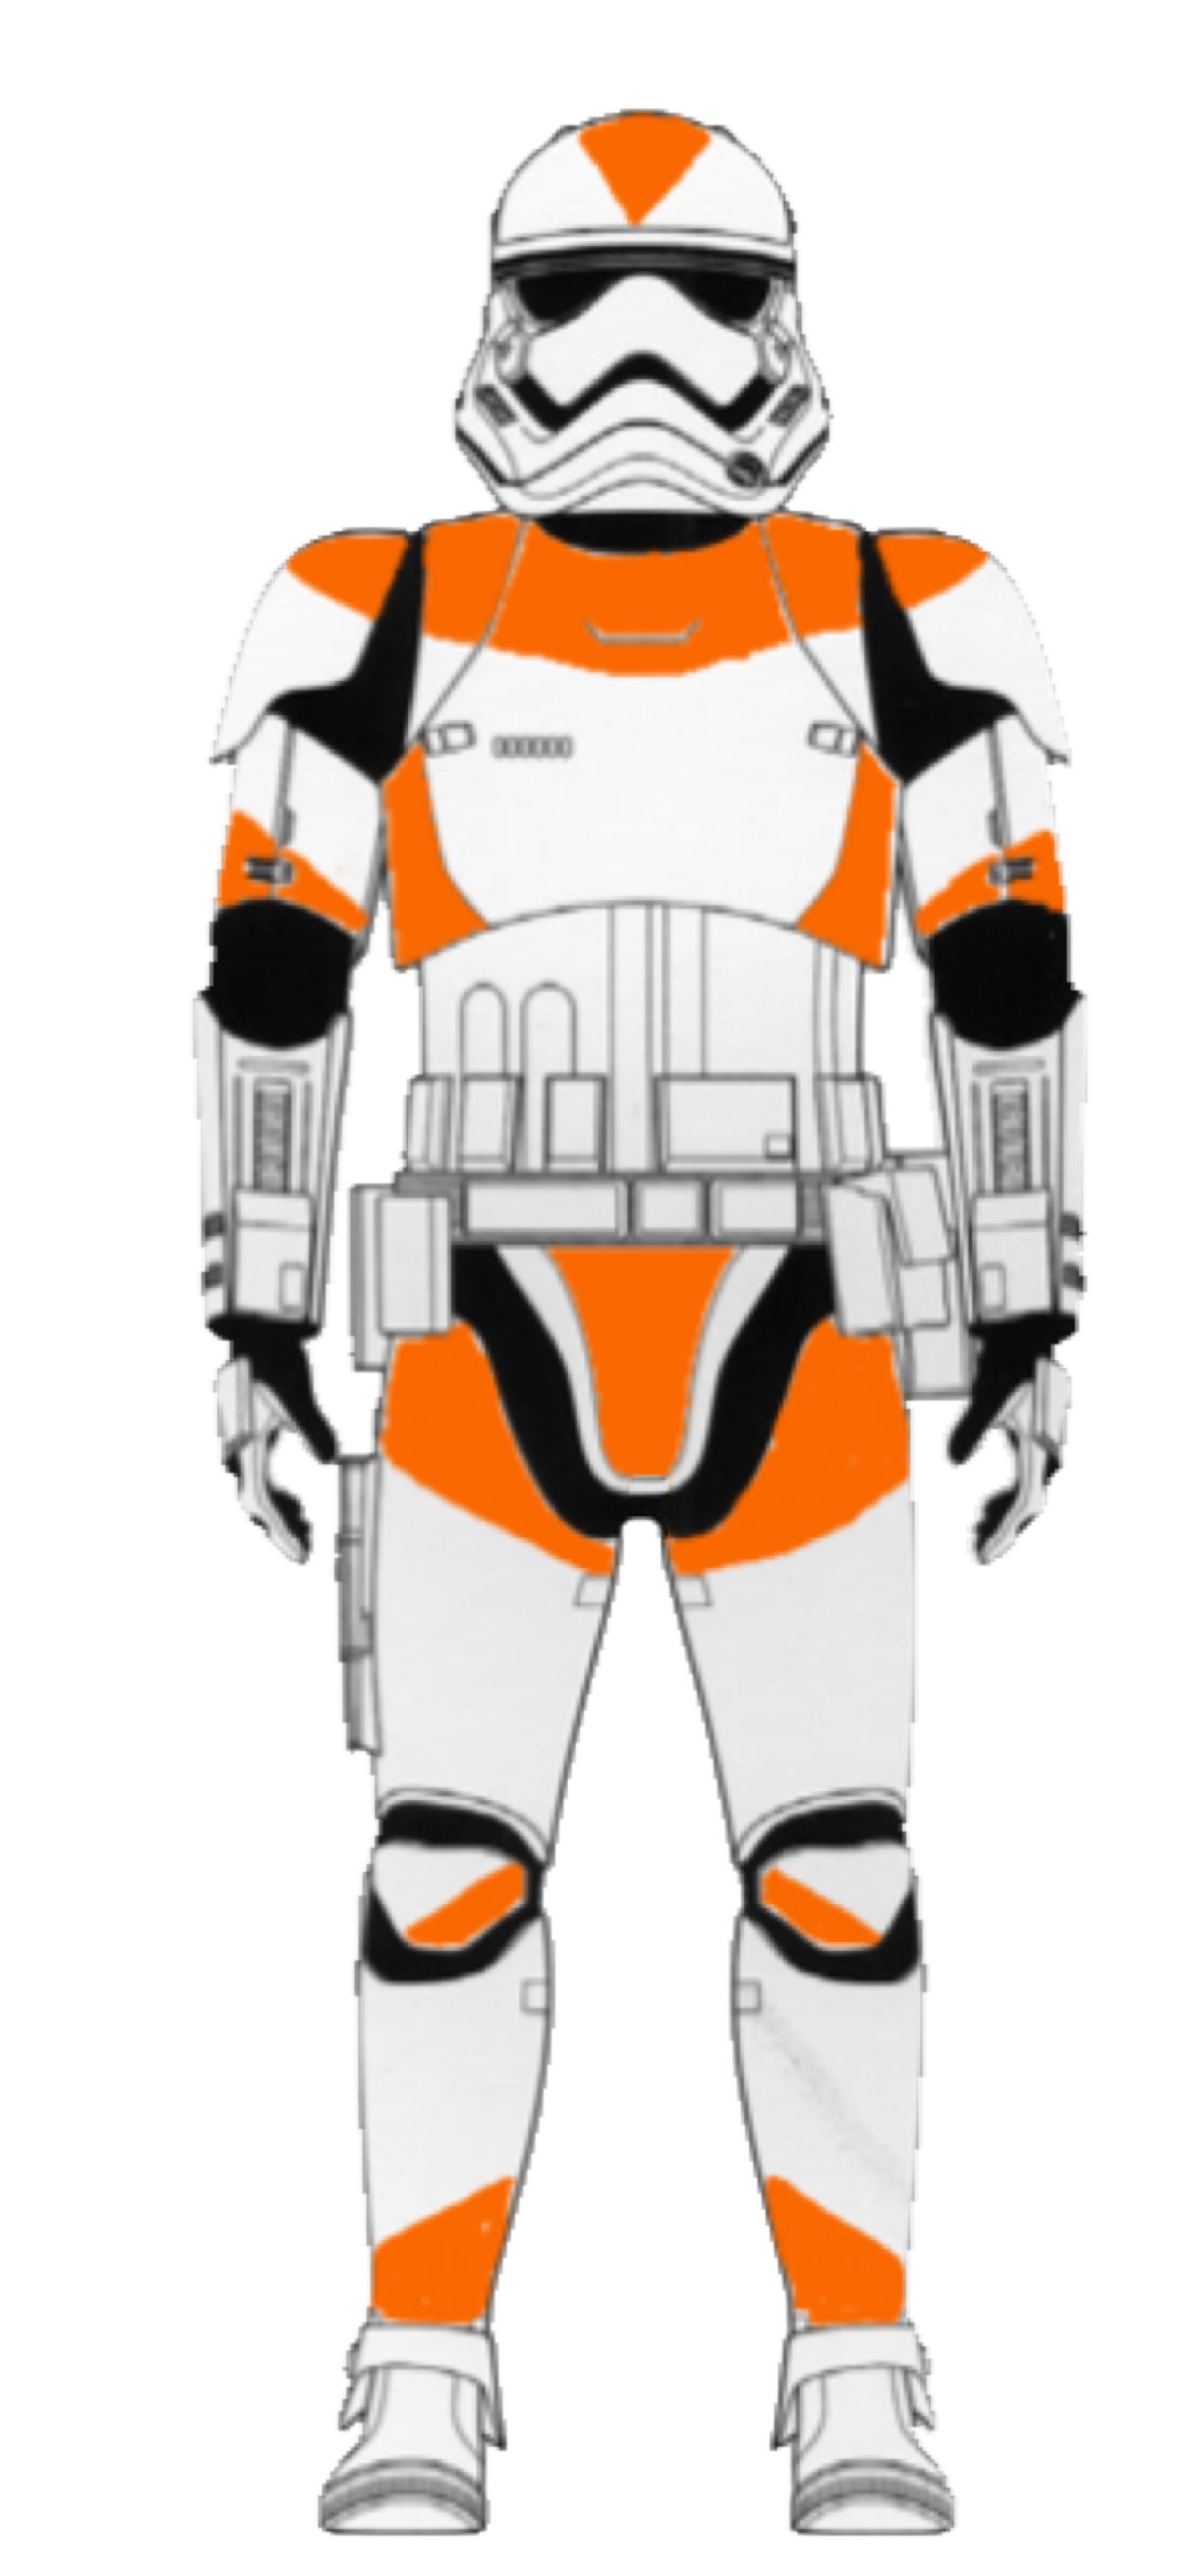 212th Attack Battalion First Order Stormtrooper Star Wars Trooper Clone Trooper Armor Stormtrooper